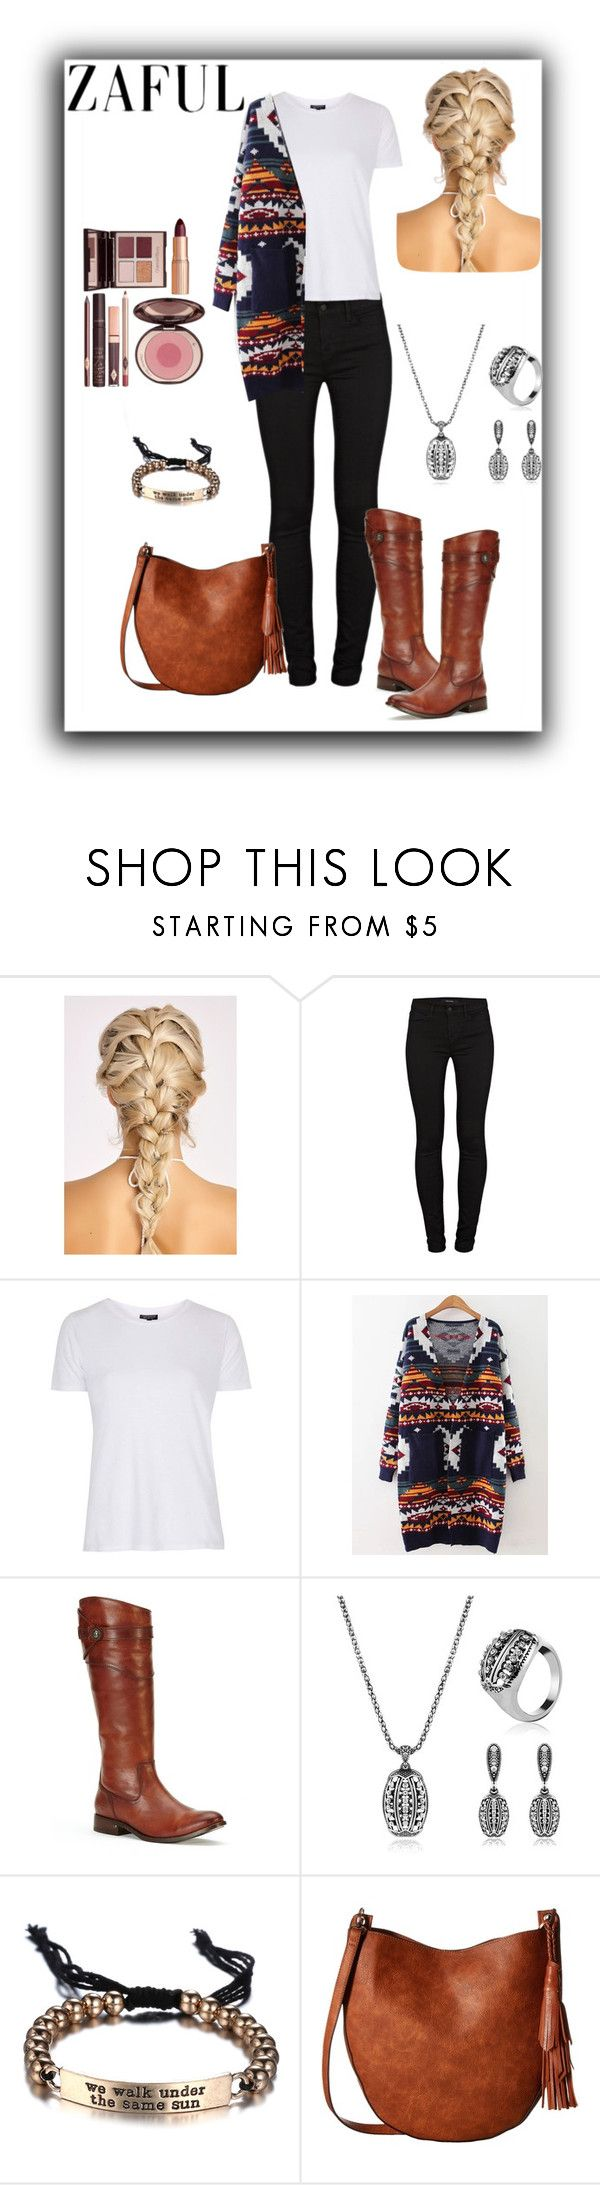 """""""ZAFUL"""" by armsdani ❤ liked on Polyvore featuring J Brand, Topshop, Frye, Gabriella Rocha and Charlotte Tilbury"""